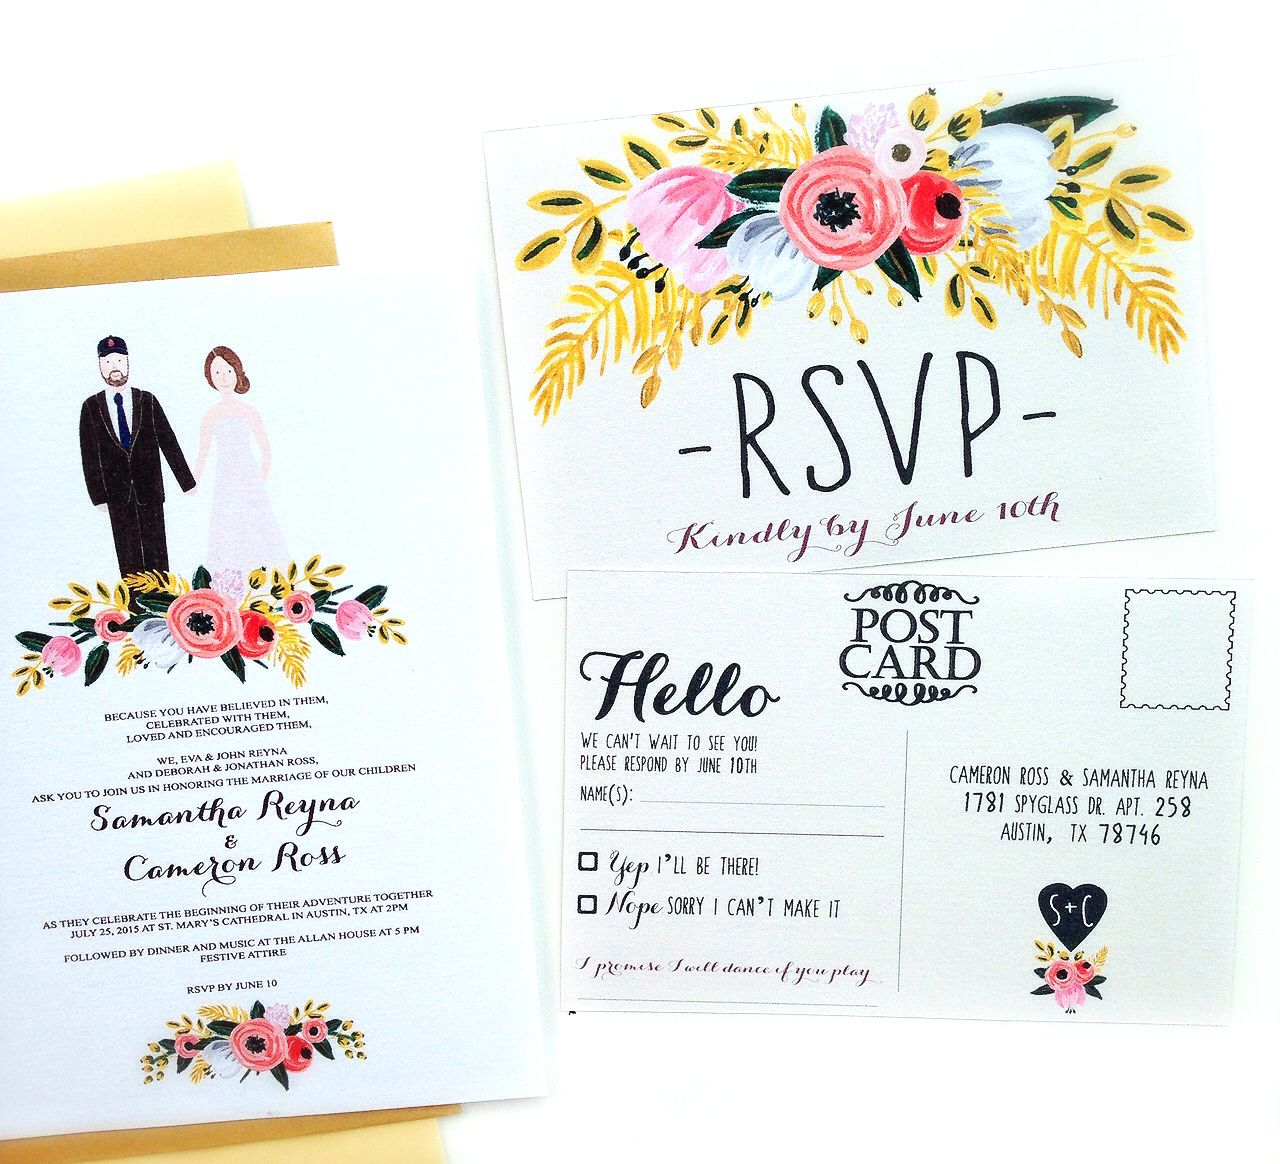 Just finished this custom couple portrait wedding invitation and ...